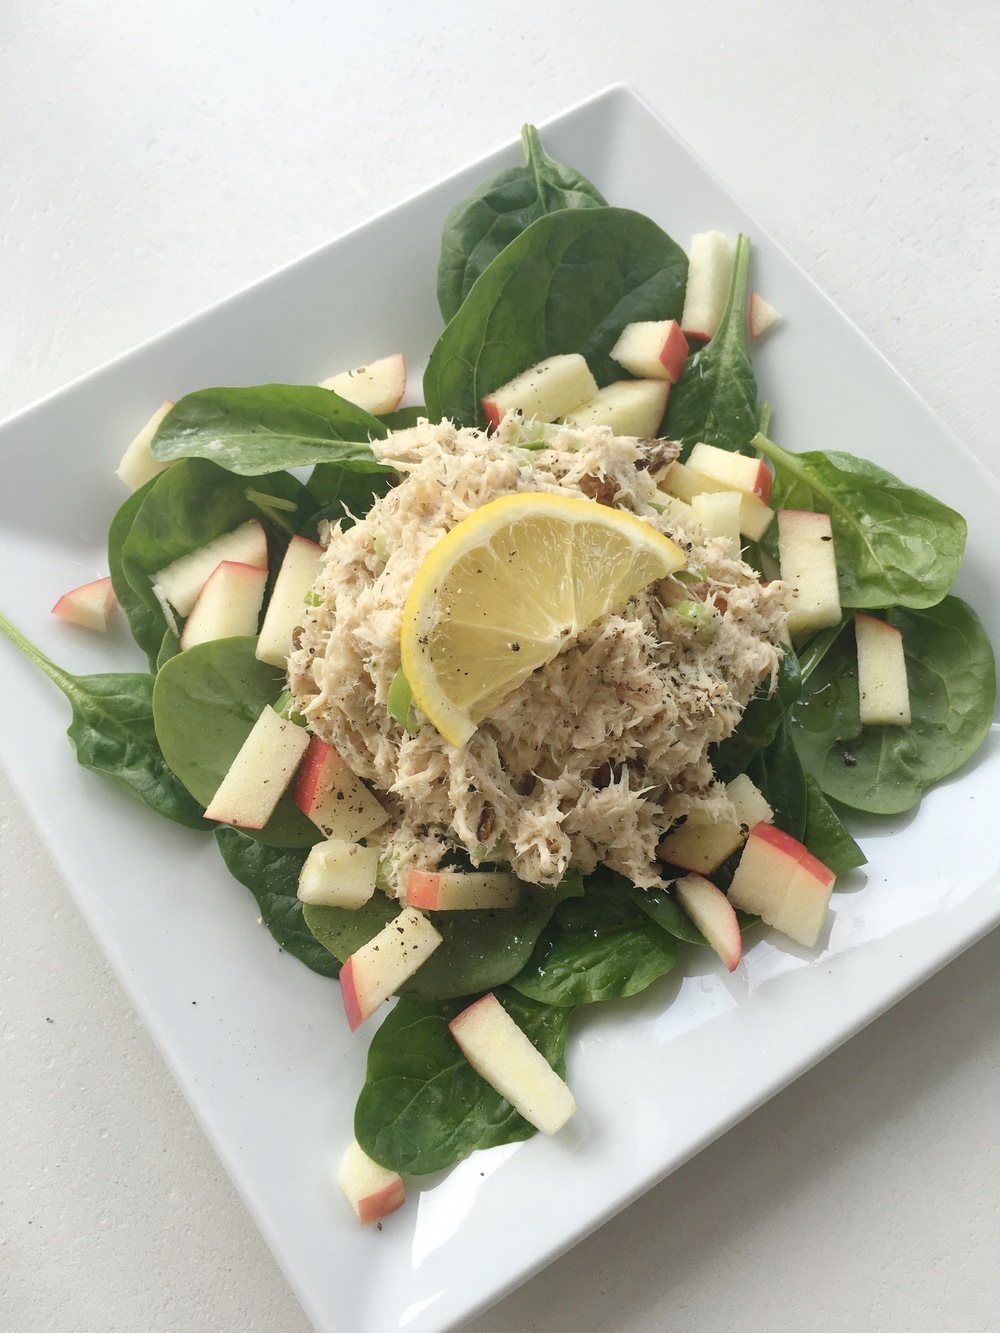 GOLDEN RAISIN TUNA SALAD